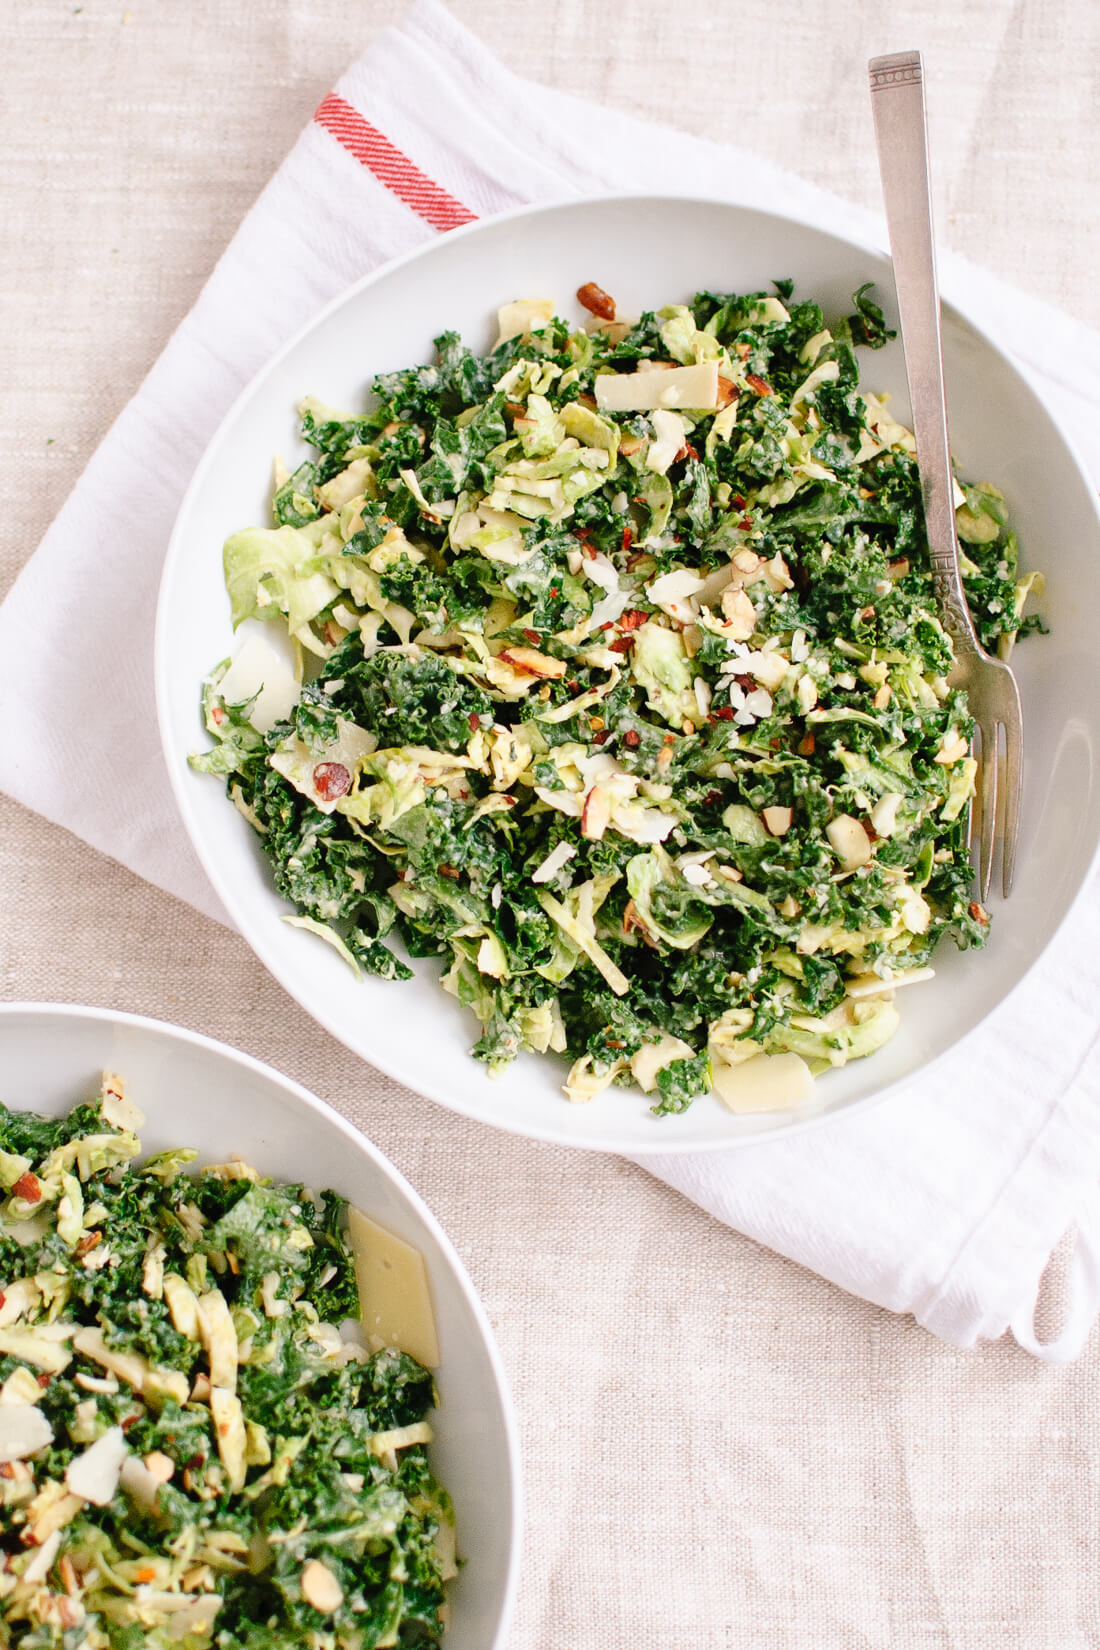 Chopped brussels sprout and kale salad with creamy tahini-maple dressing